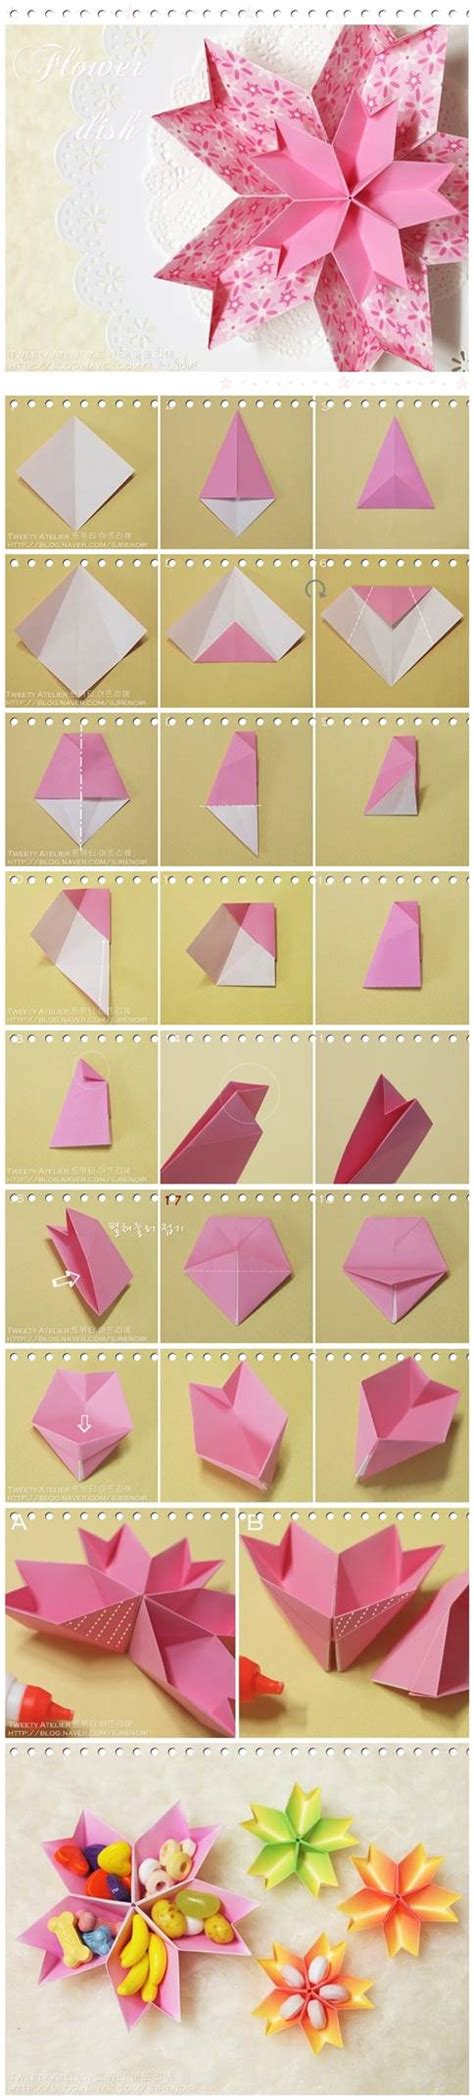 How To Make Flowers With Paper Step By Step - how to make origami flowers step by step breeds picture